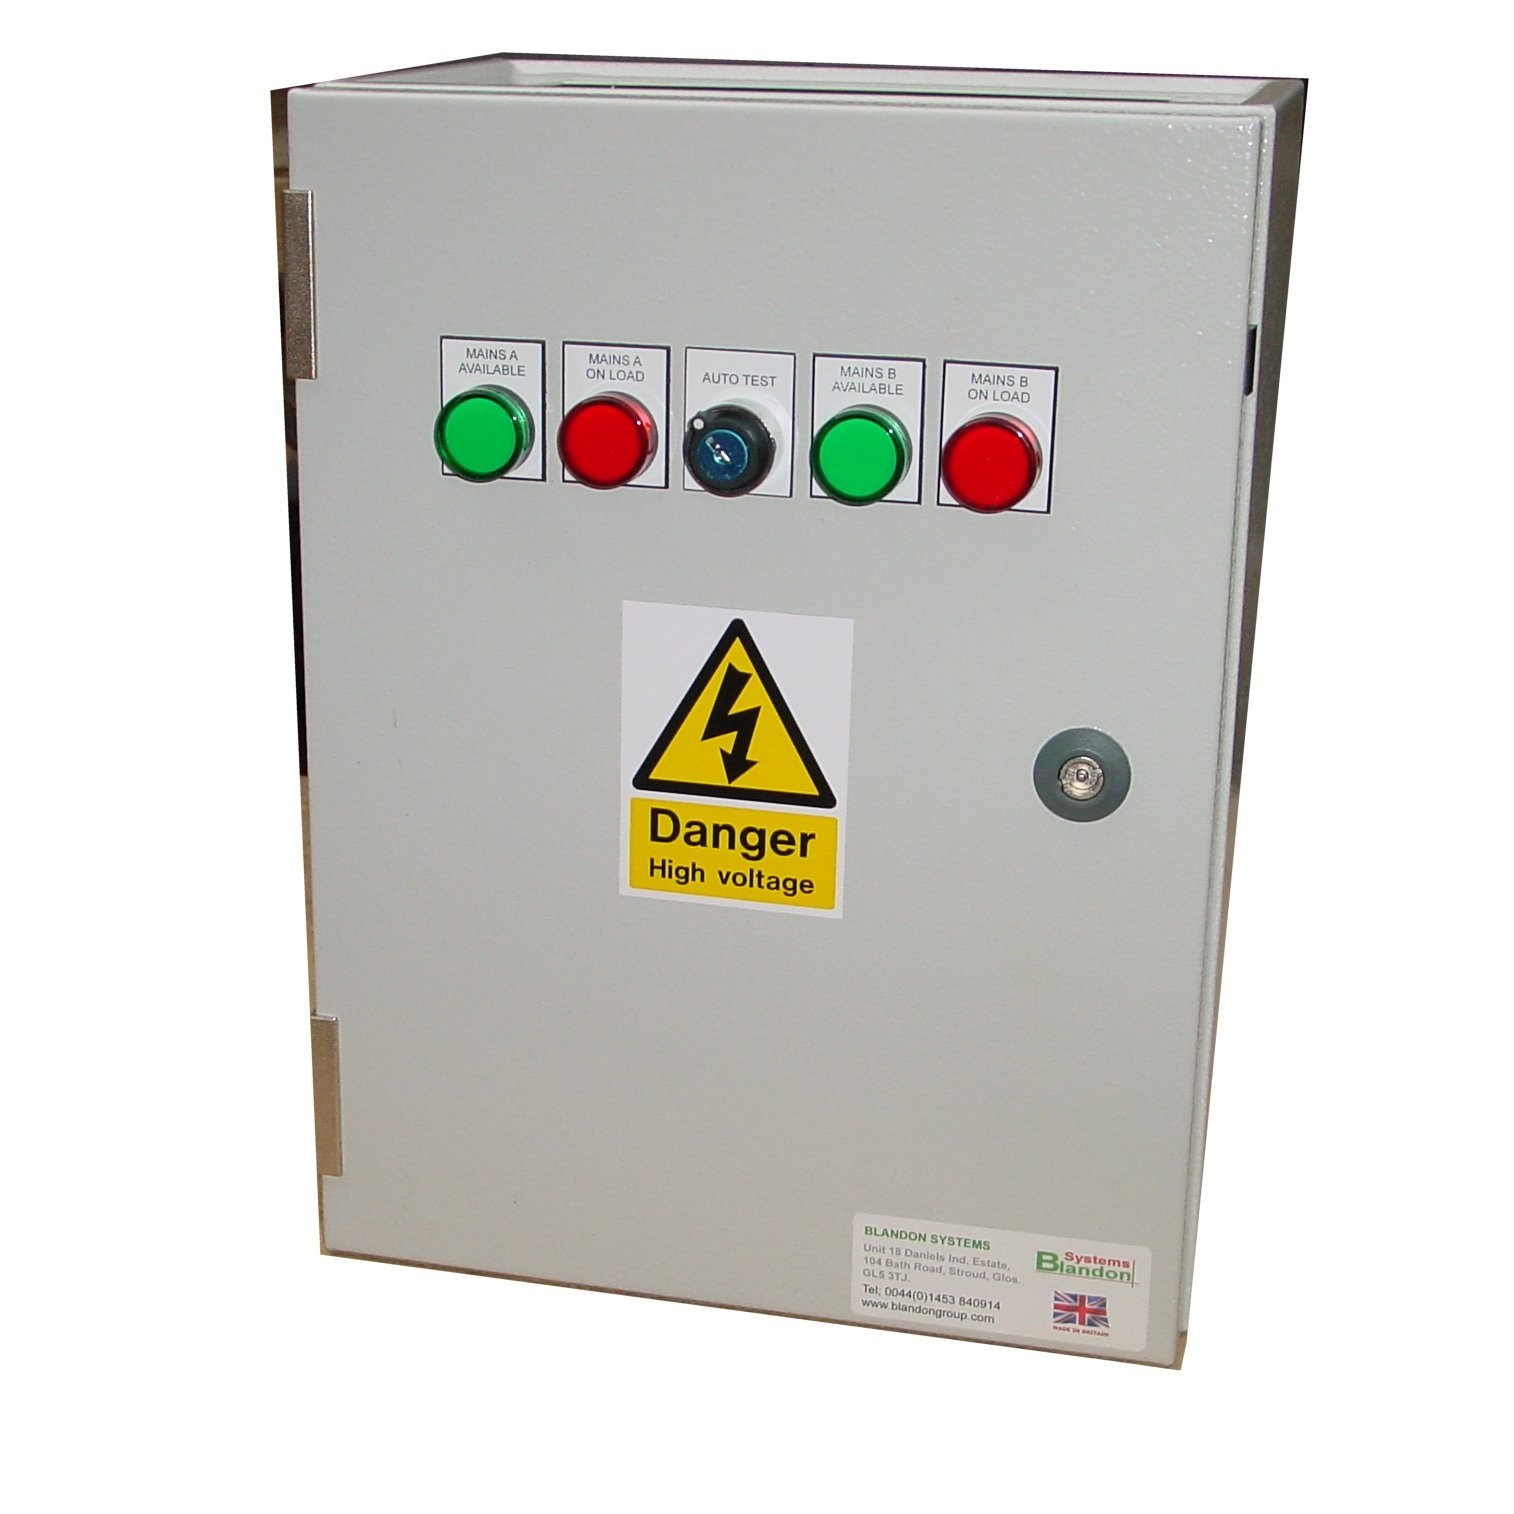 60A ATS 3 Phase Mains-Mains 400V, UVR Controlled, ICG Contactors